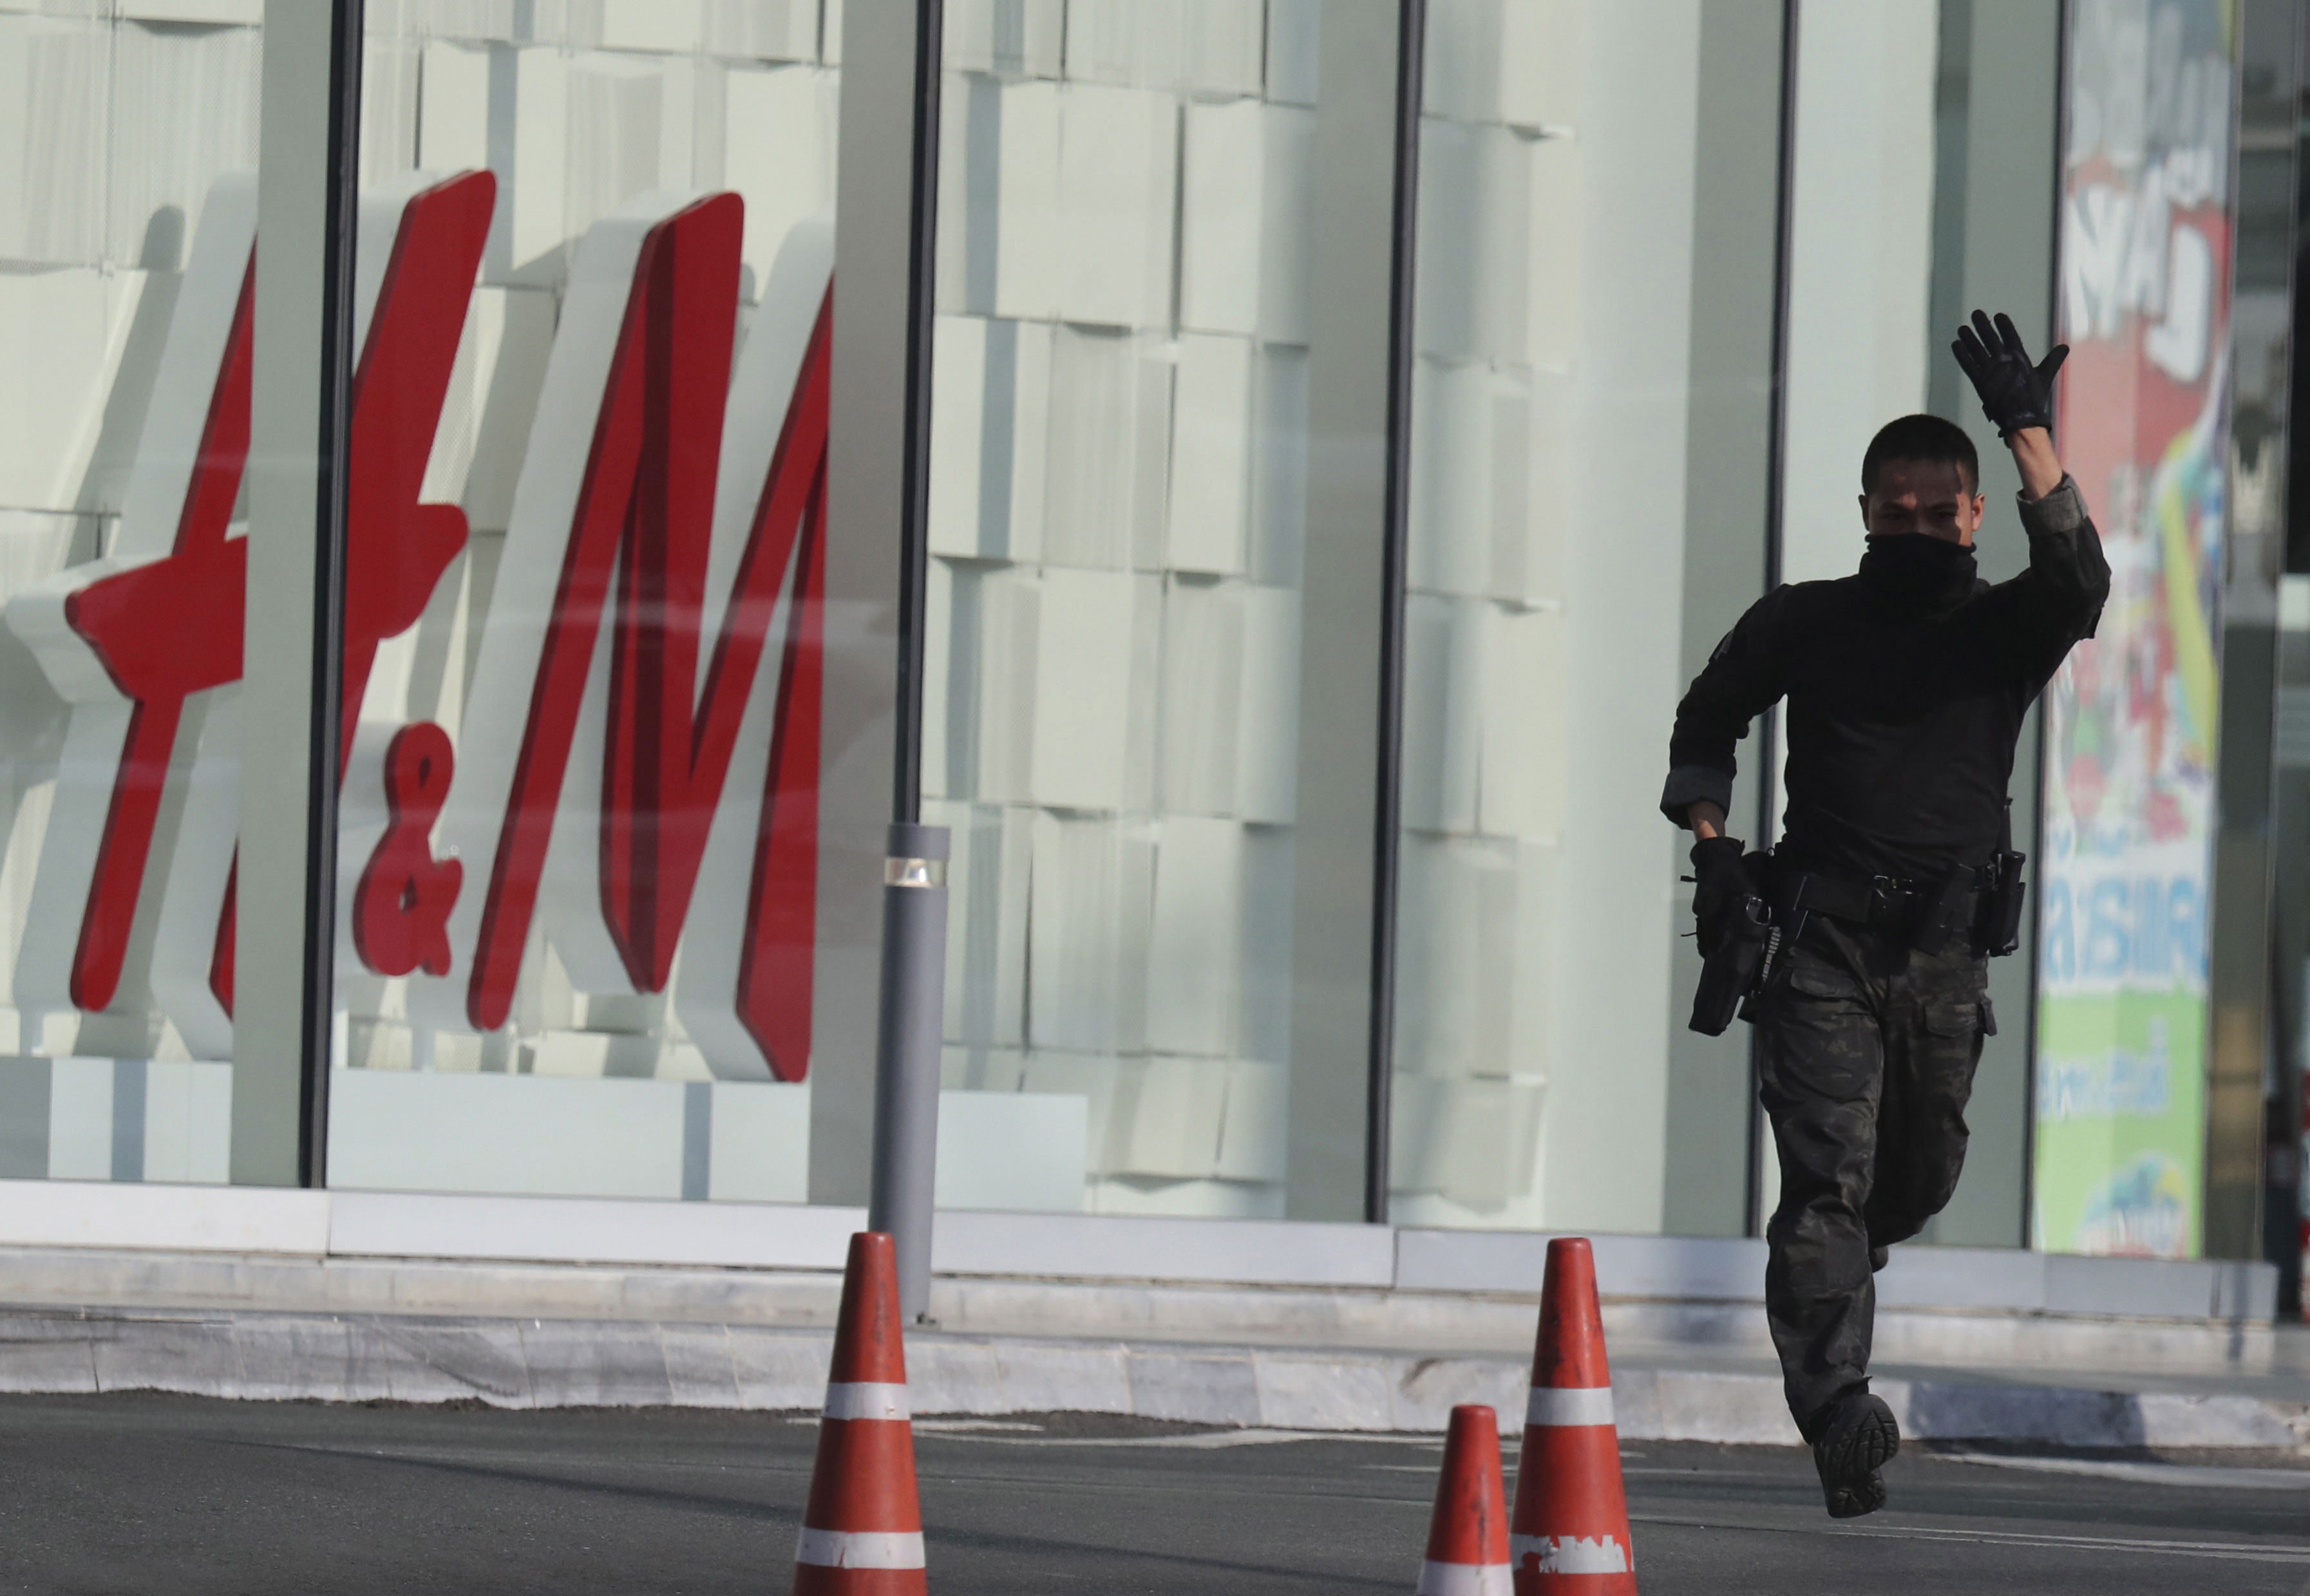 An armed commando soldier shouts for ambulance outside Terminal 21 Korat mall in Nakhon Ratchasima